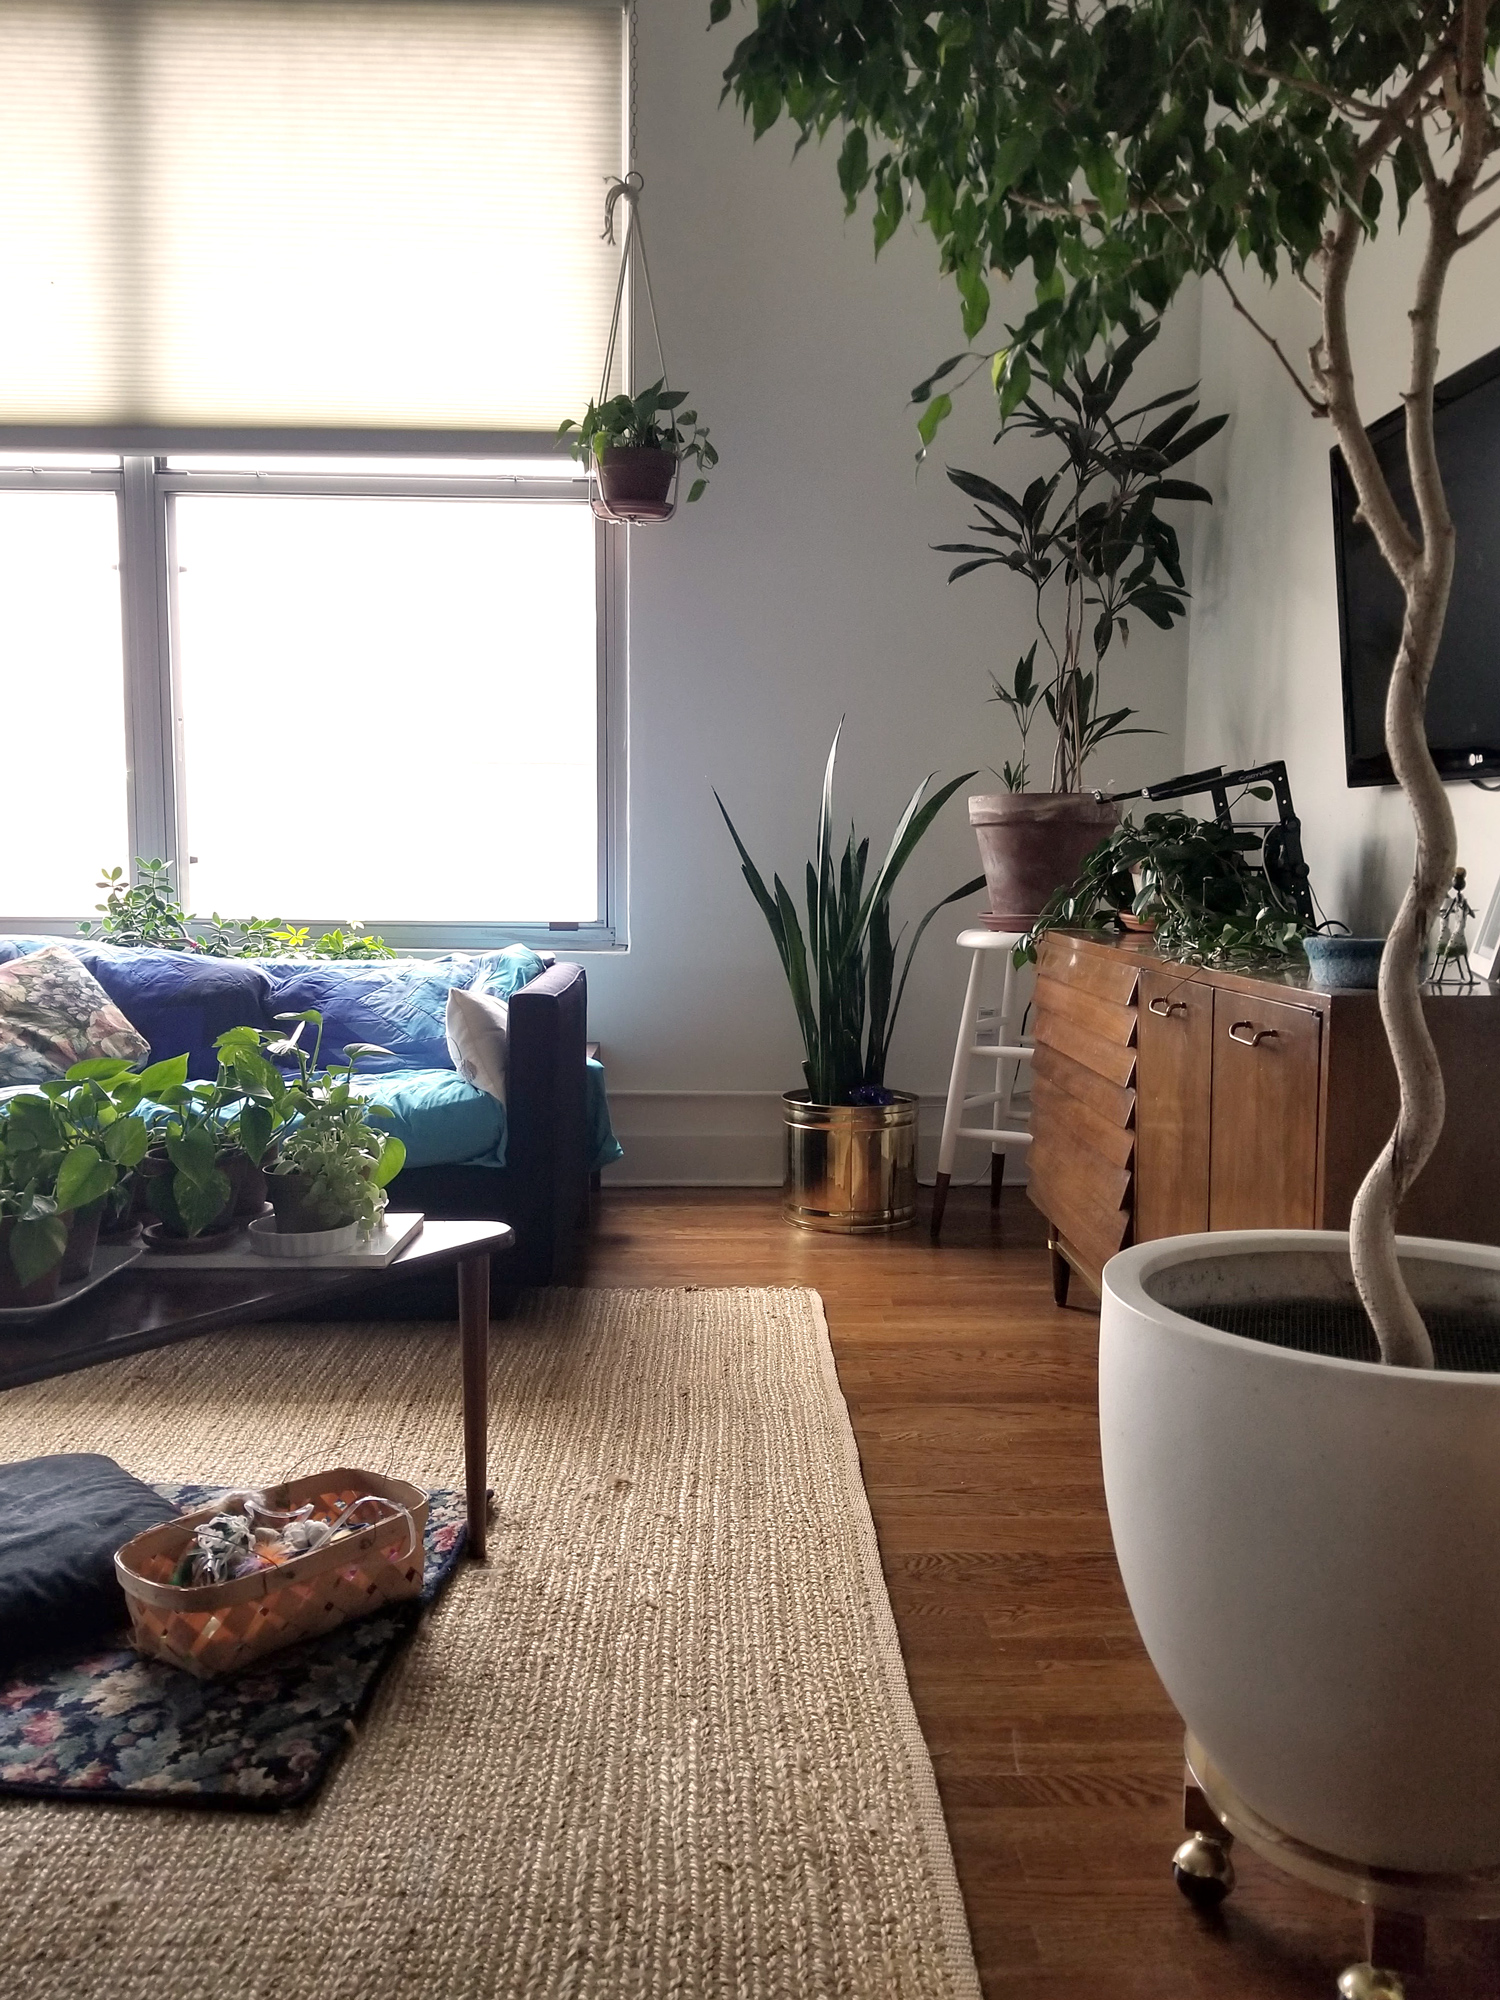 My own home today, L to R: pothos babies incubating on the coffee table, jade and umbrella plant under the window (not pictured, gardenia cutting and creeping fig), another pothos child hanging, snake plant in my mom's old brass planter, a weird craigslist dracaena, cutting from a cutting from my mom's mom's hoya plant, and finally the curvy trunk weeping fig. Sub floral textiles in lieu of fruit.